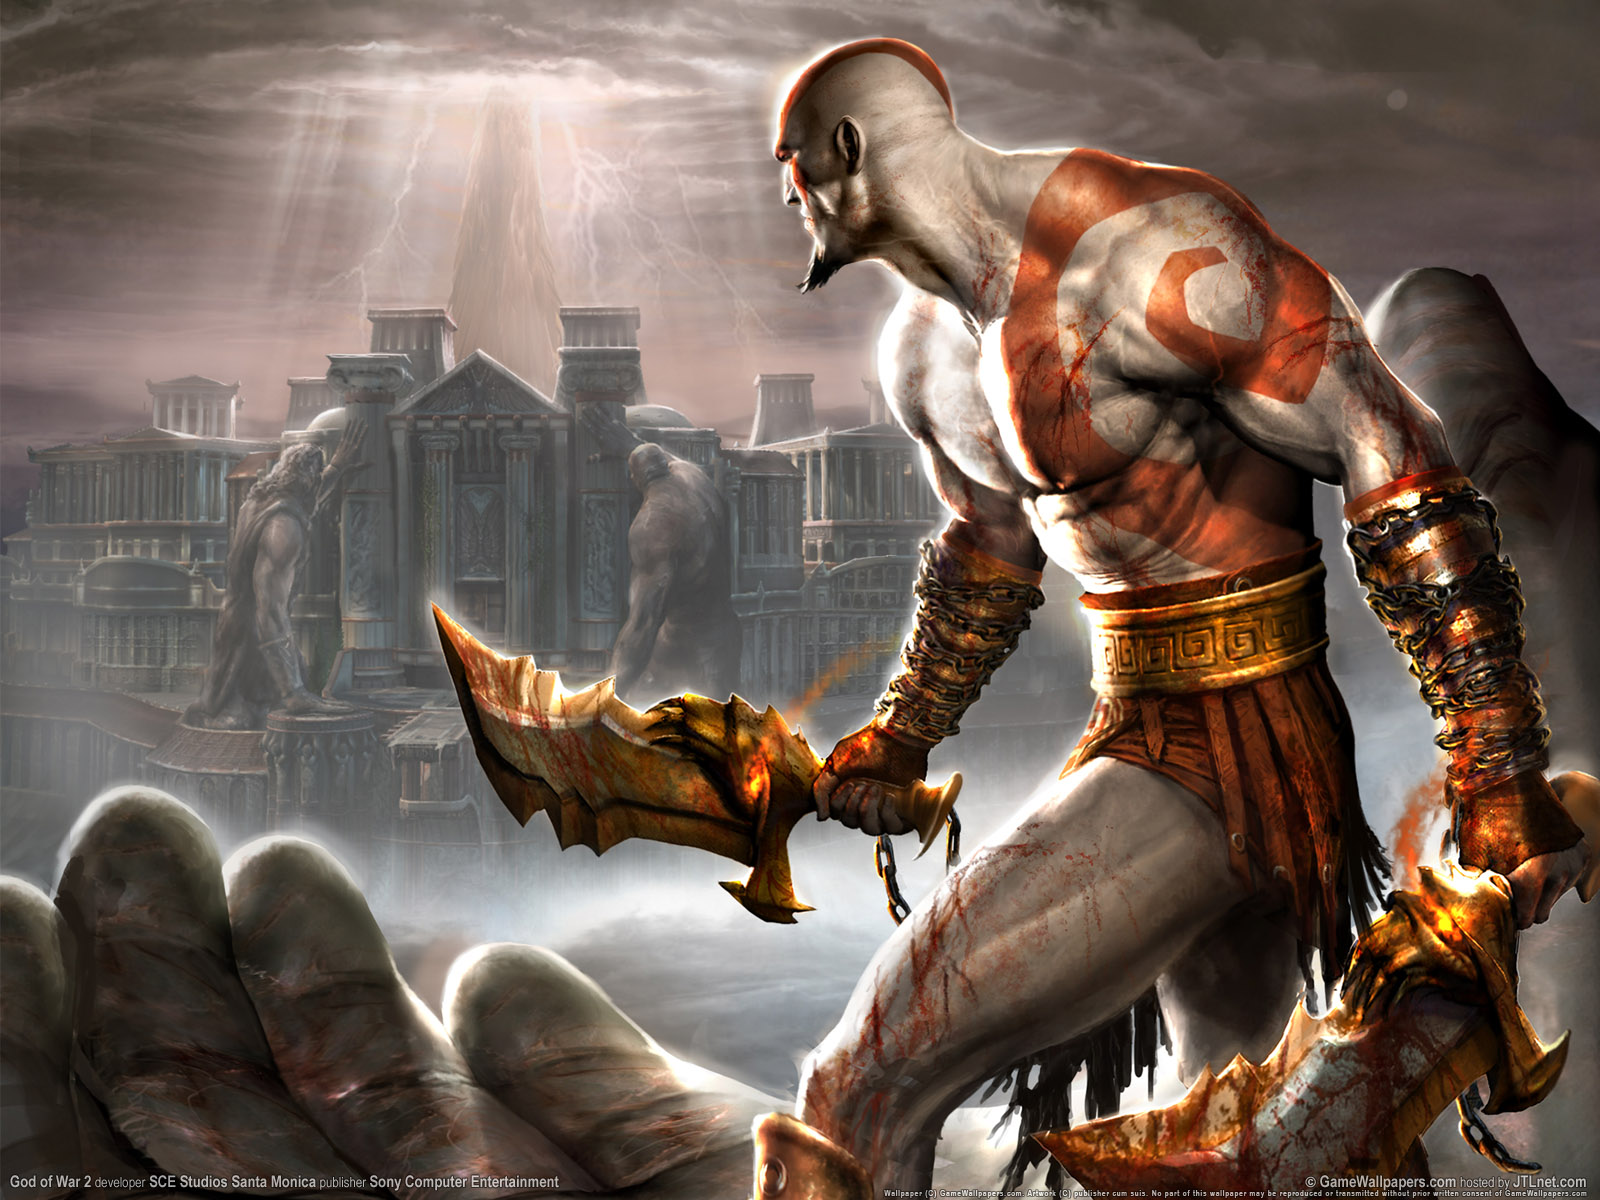 Wallpapers de mitologia y dioses taringa for God of war 3 jardines superiores